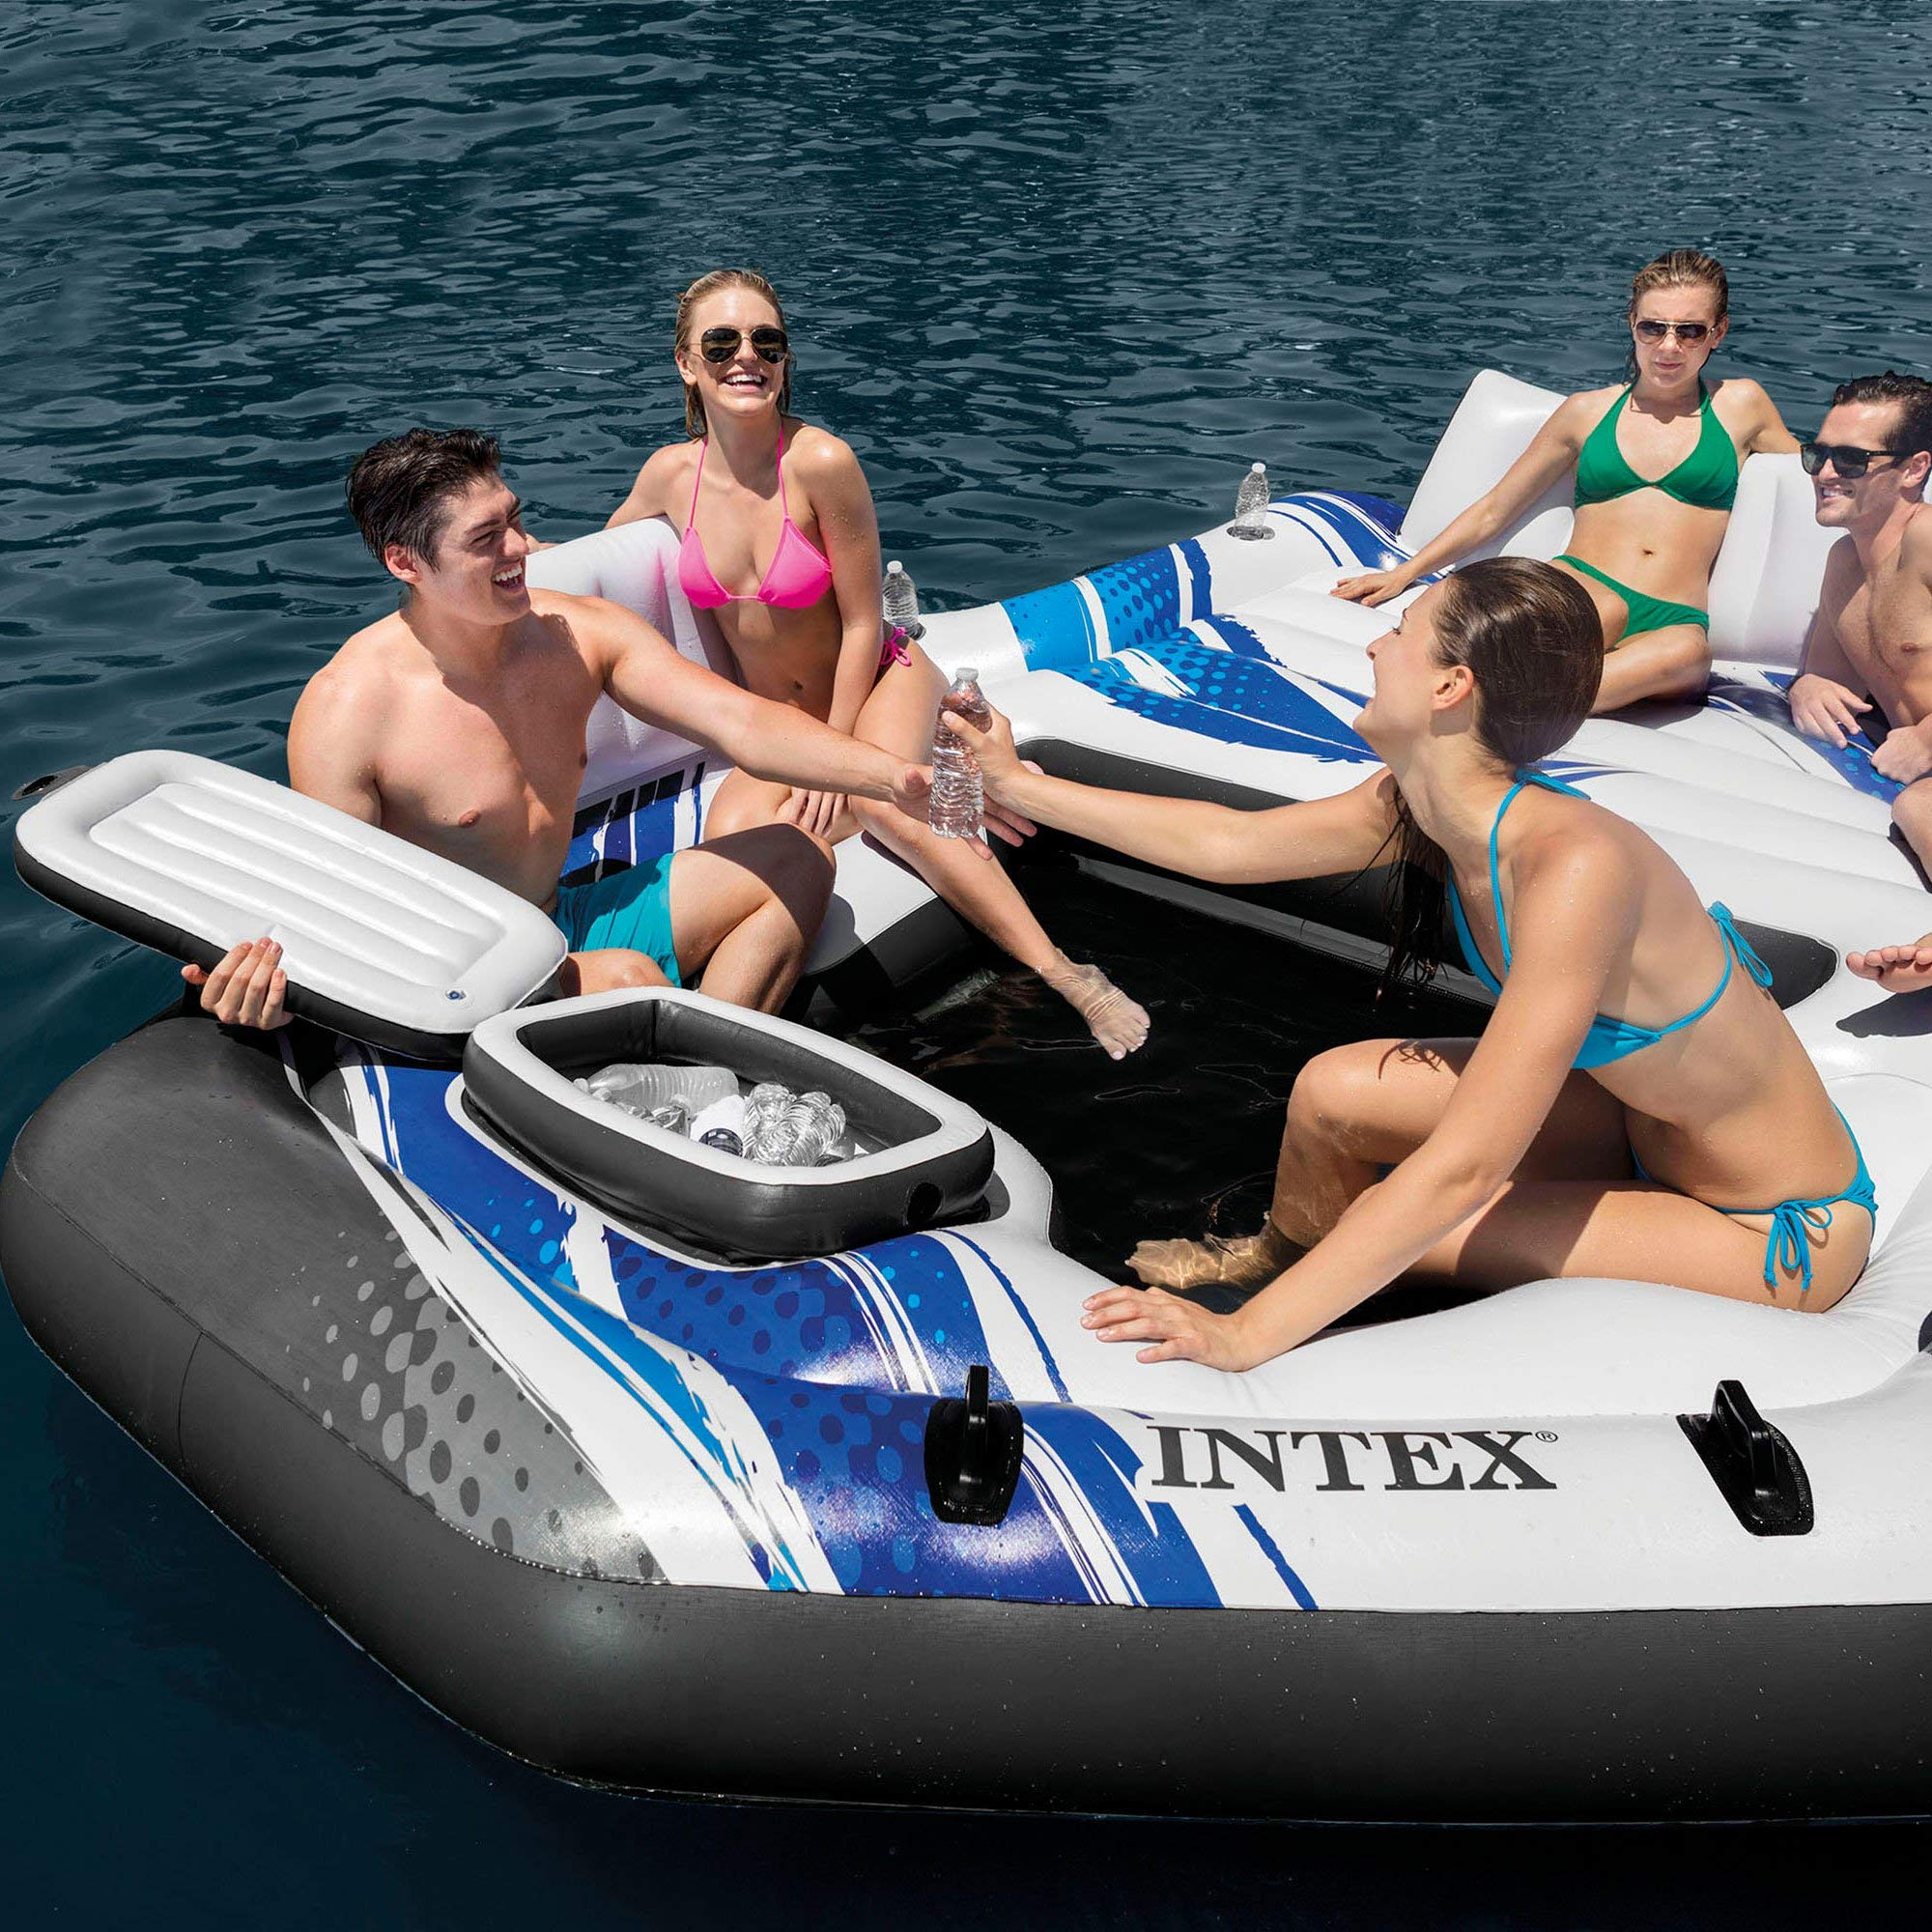 Intex Blue Tropical Island 5 Seat Floating Lounge Raft w/ 4 Cup Holders | 5727EP by Intex (Image #4)